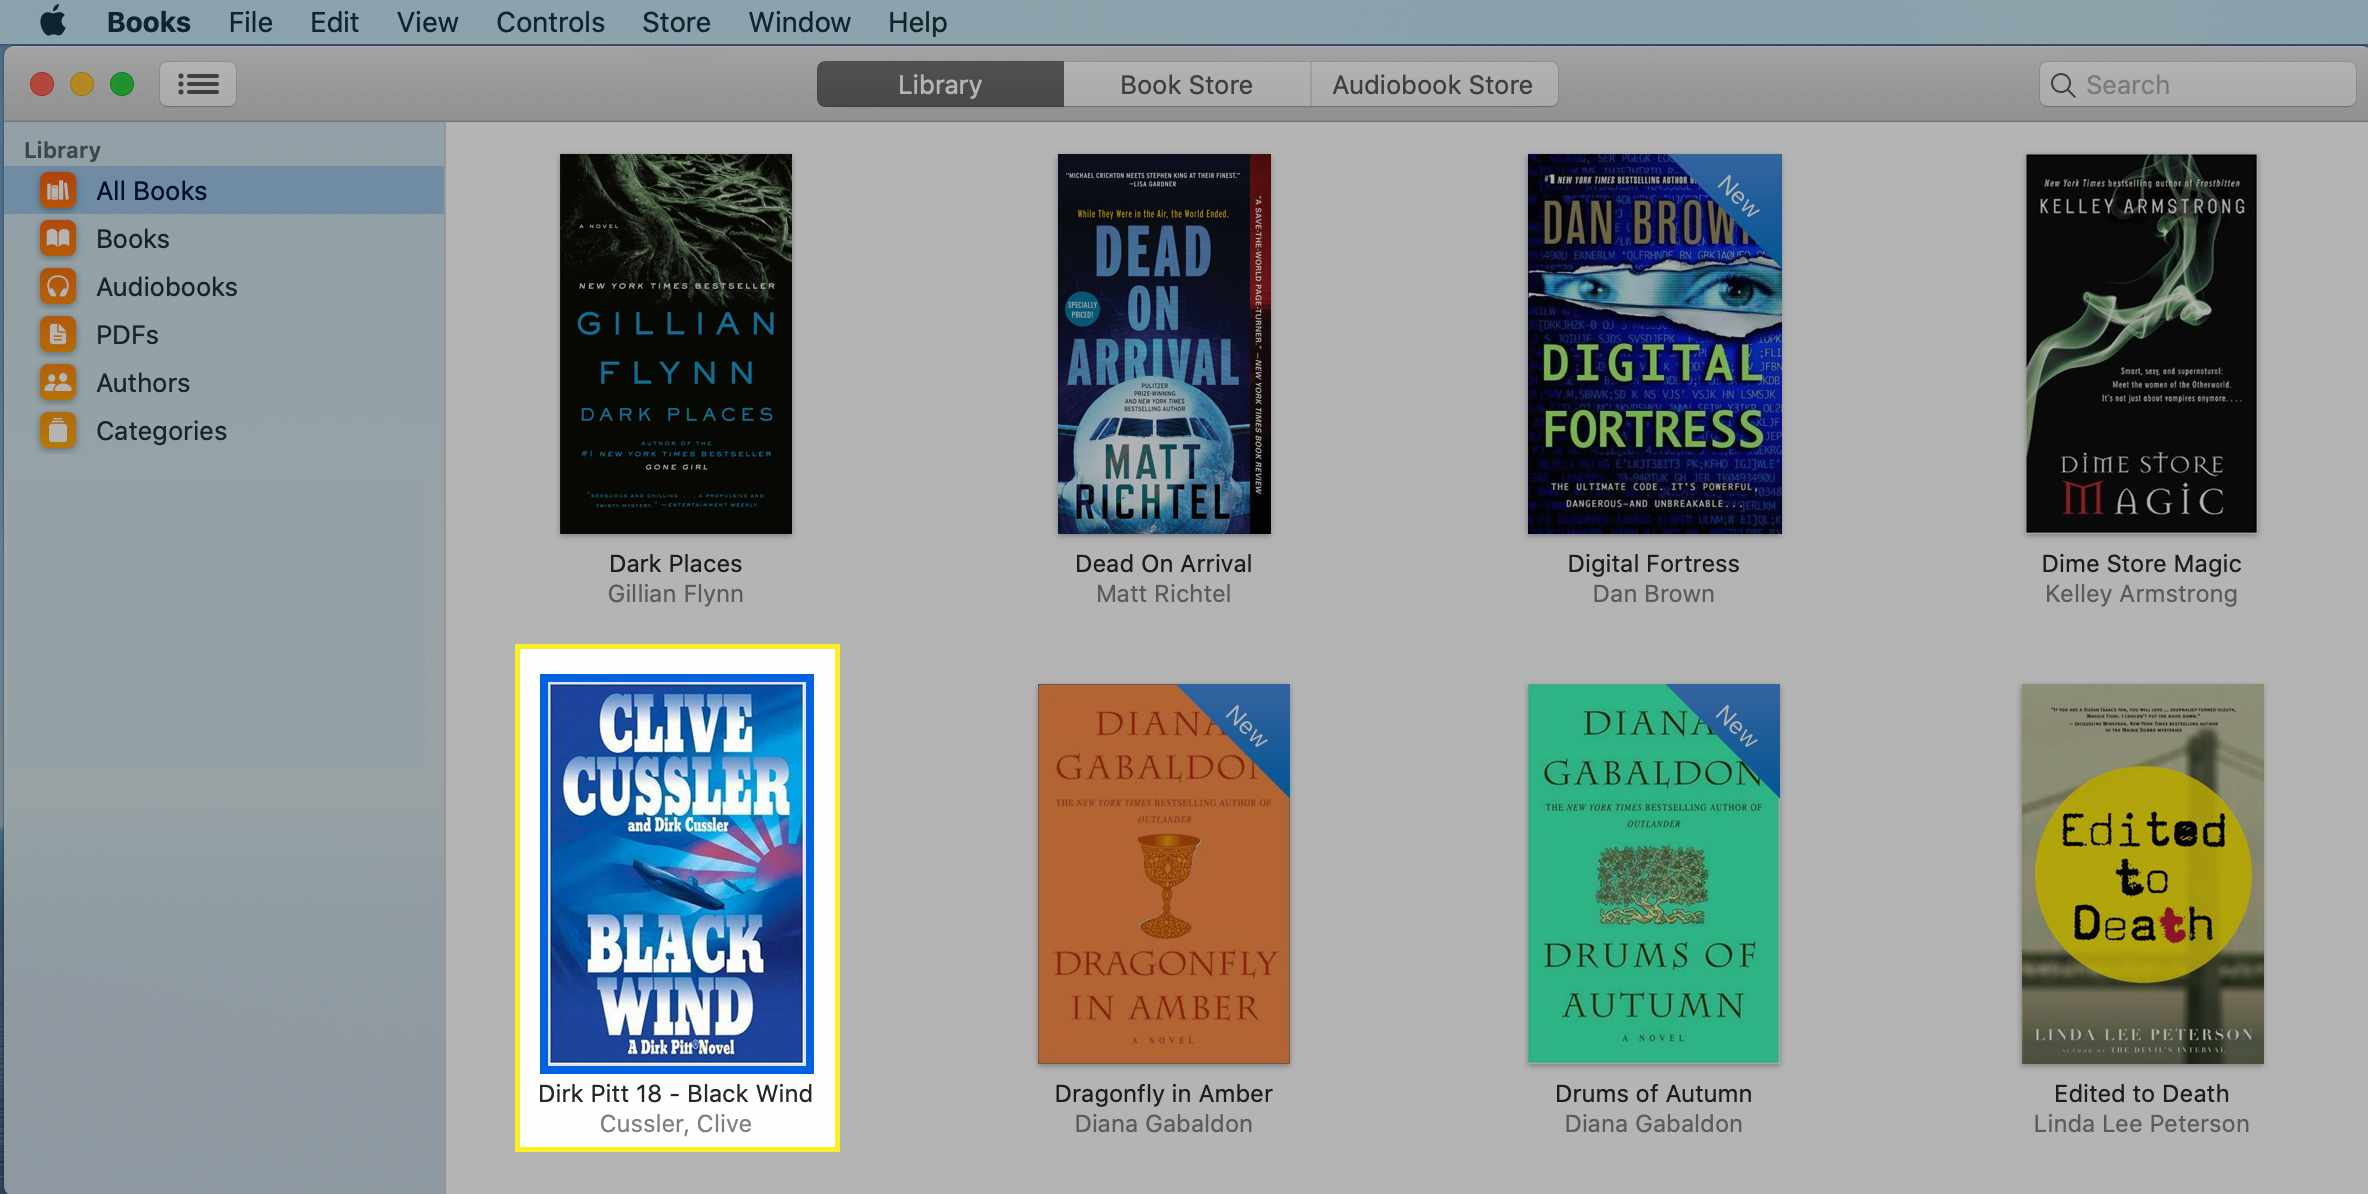 A book selected in the Books app on a Mac